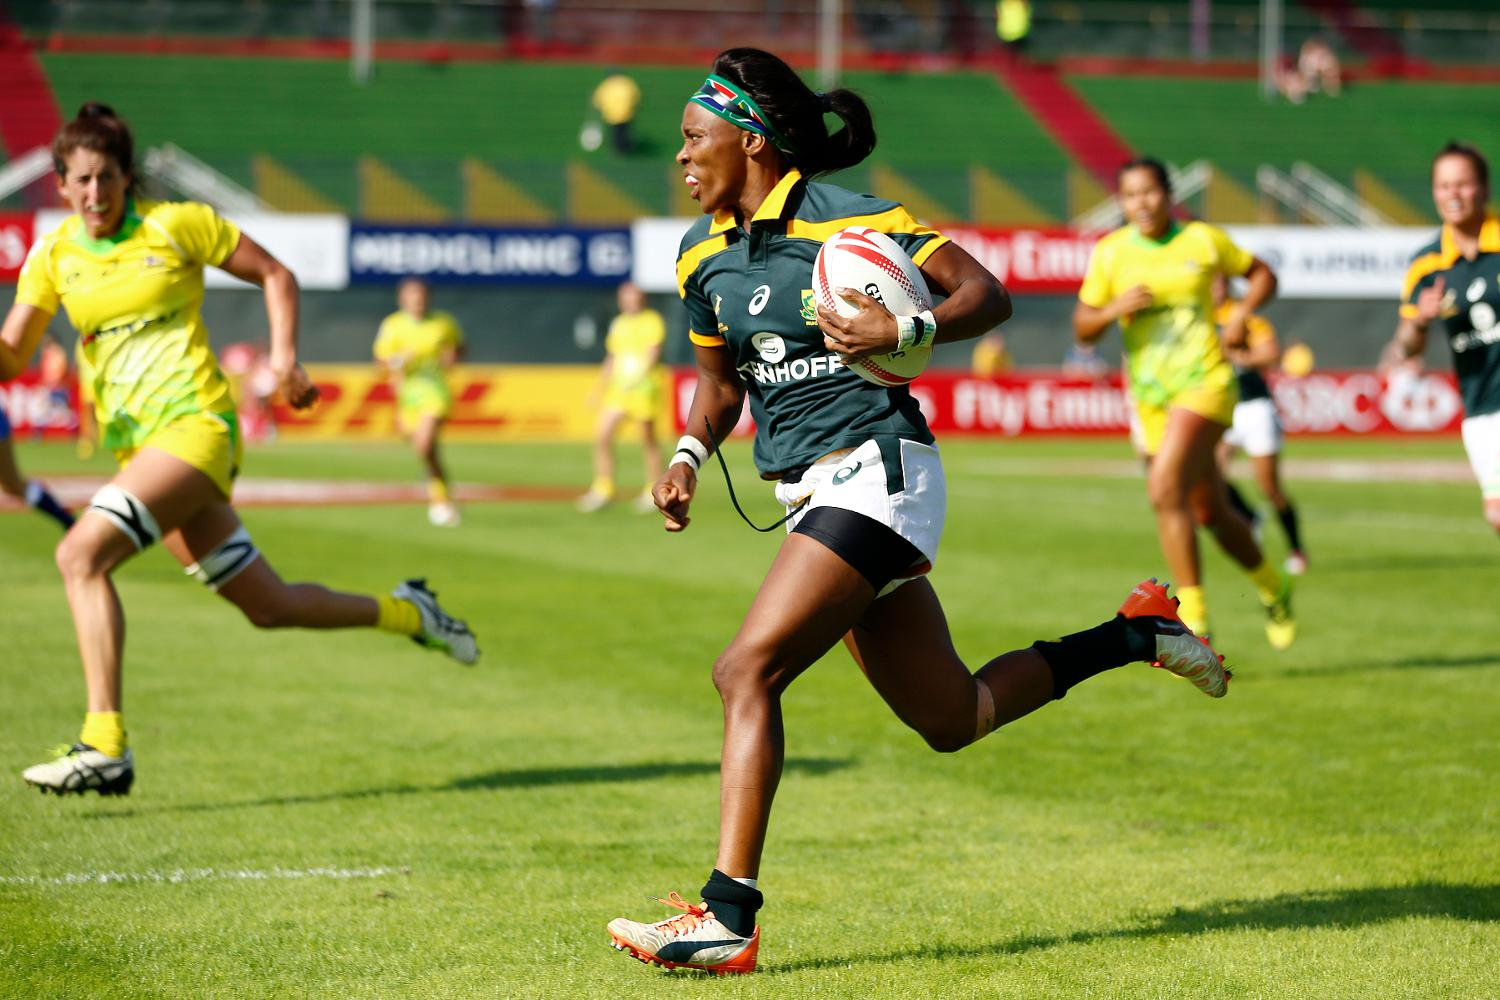 Emirates Airline Dubai Rugby Sevens 2016 - Women's